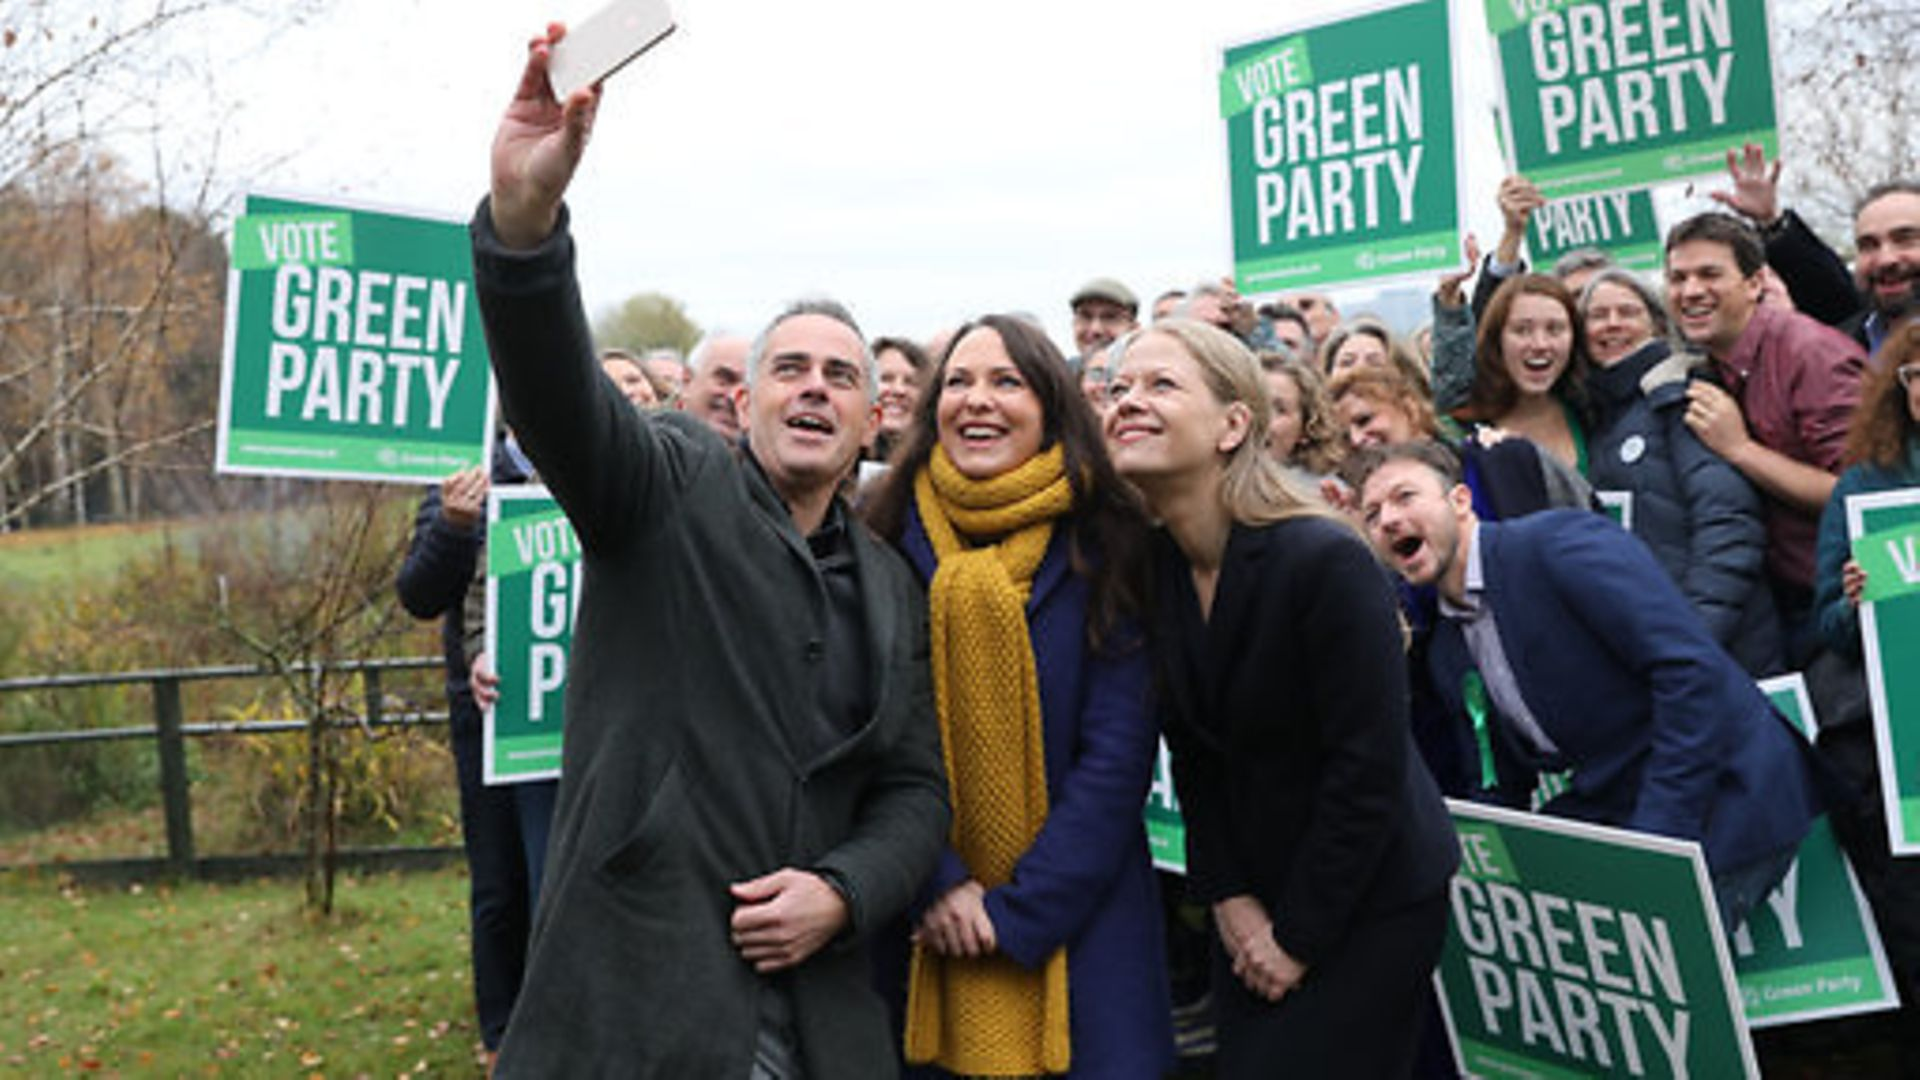 (left to right) Green Party Co-Leader Jonathan Bartley, Deputy leader Amelia Womack and Co-Leader Sian Berry - Credit: PA